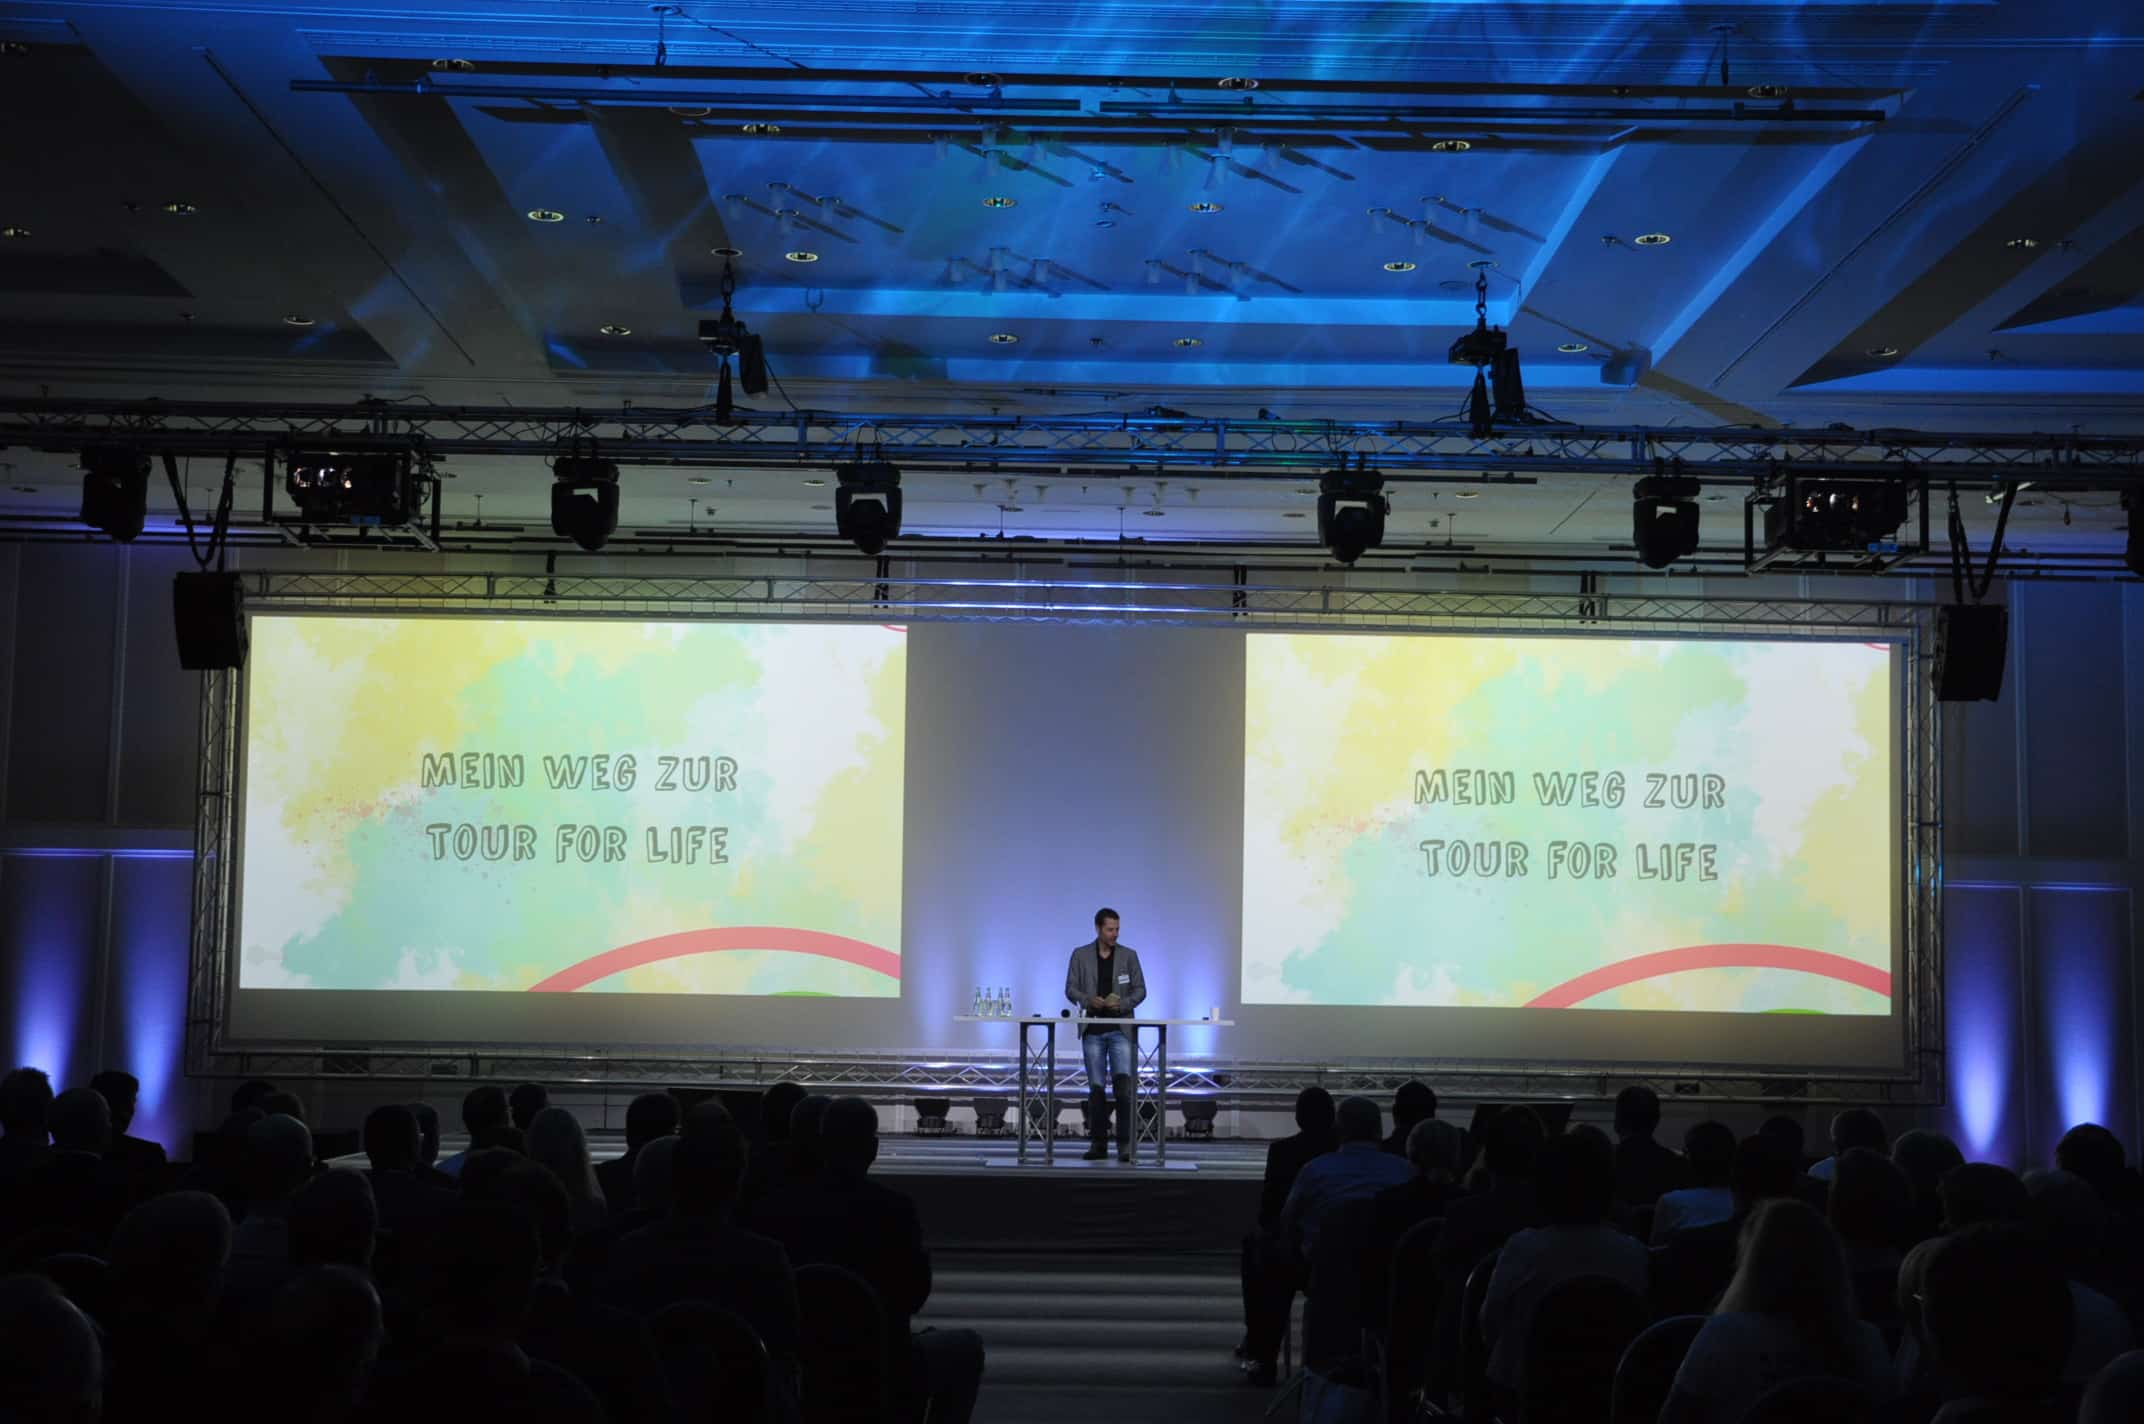 <!--:de-->Tour for Life 2015 &#8211; Ein kurzer Jahresrückblick <!--:--><!--:en-->Tour for Life 2015 &#8211; a review on the past year<!--:-->